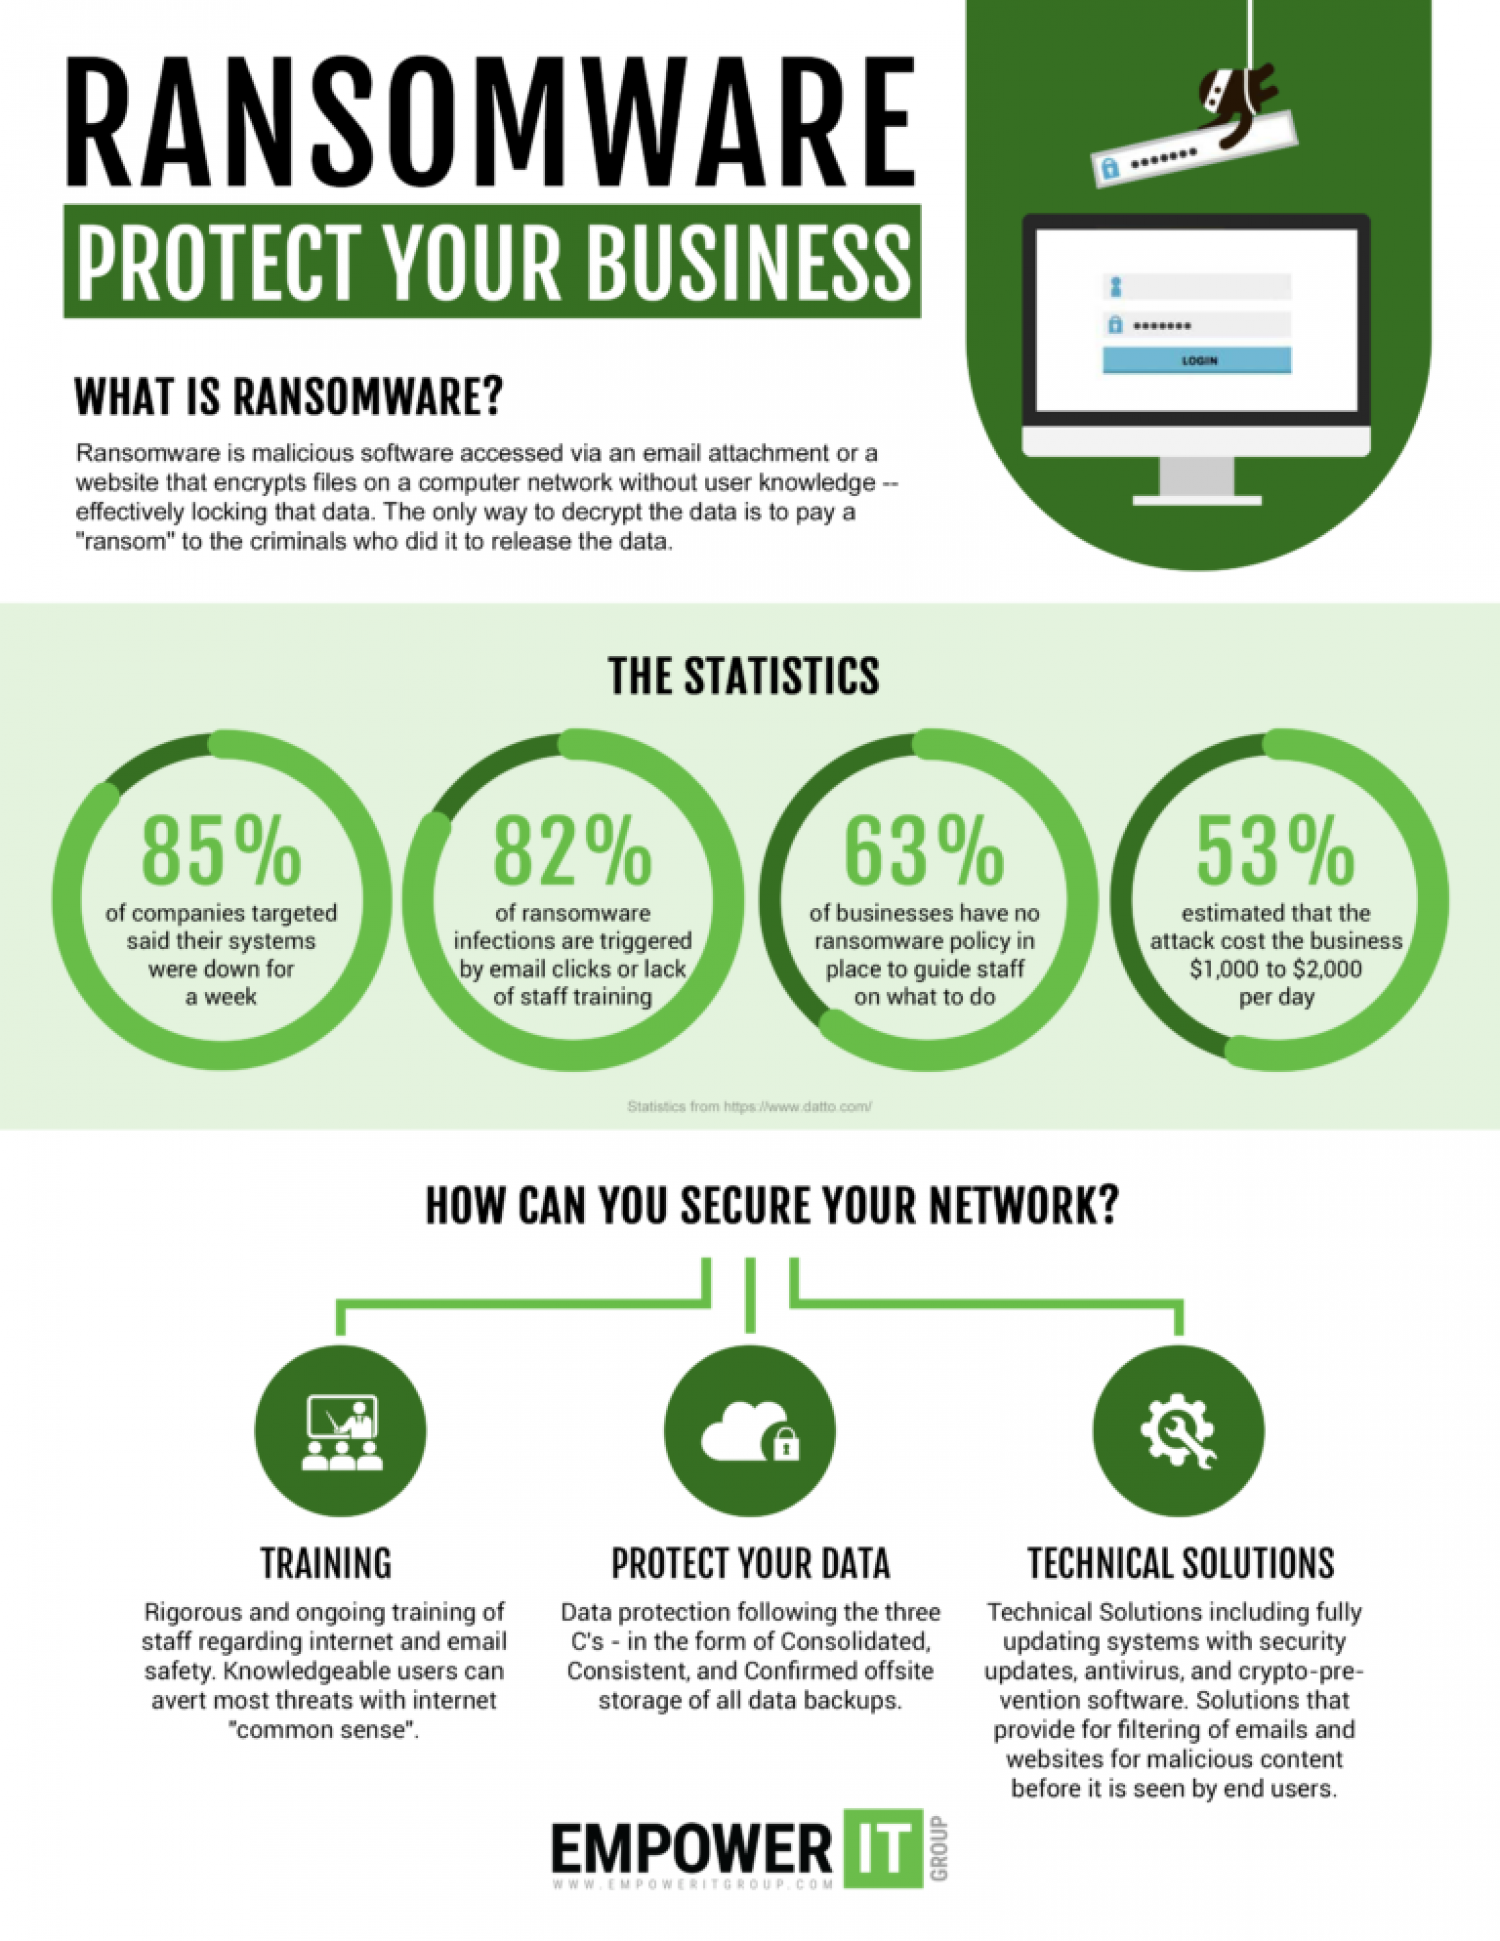 How You Can Protect Your Business from Ransomware Infographic